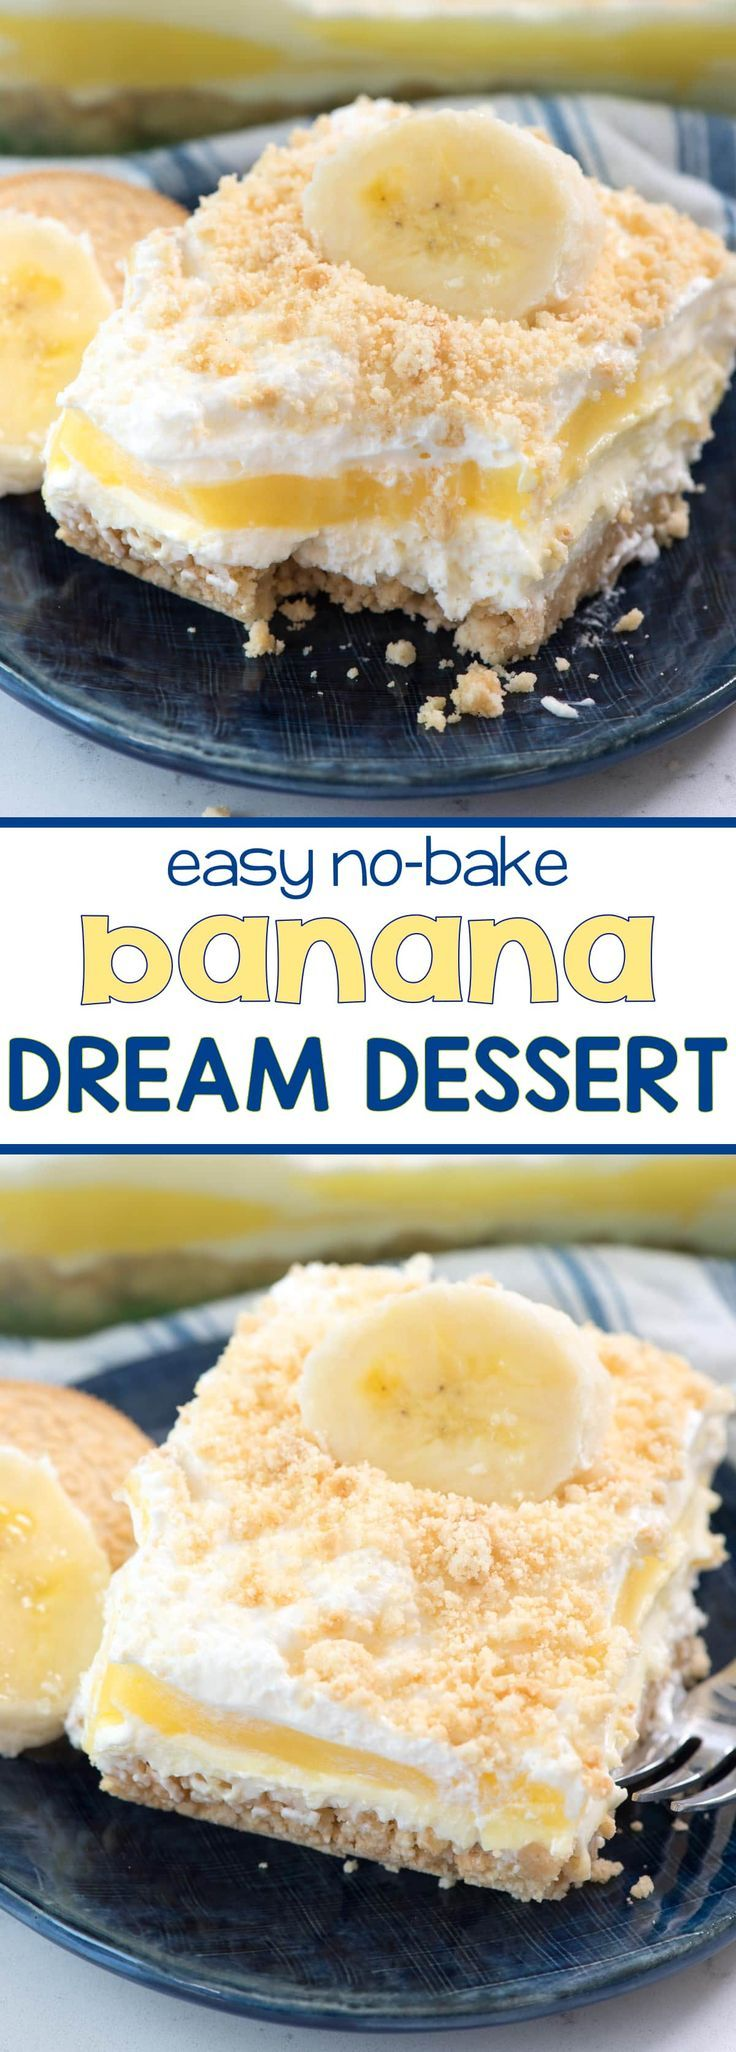 No Bake Banana Pudding Dream Dessert - this easy dessert lasagna recipe is made with BANANA pudding! Its layered with no bake